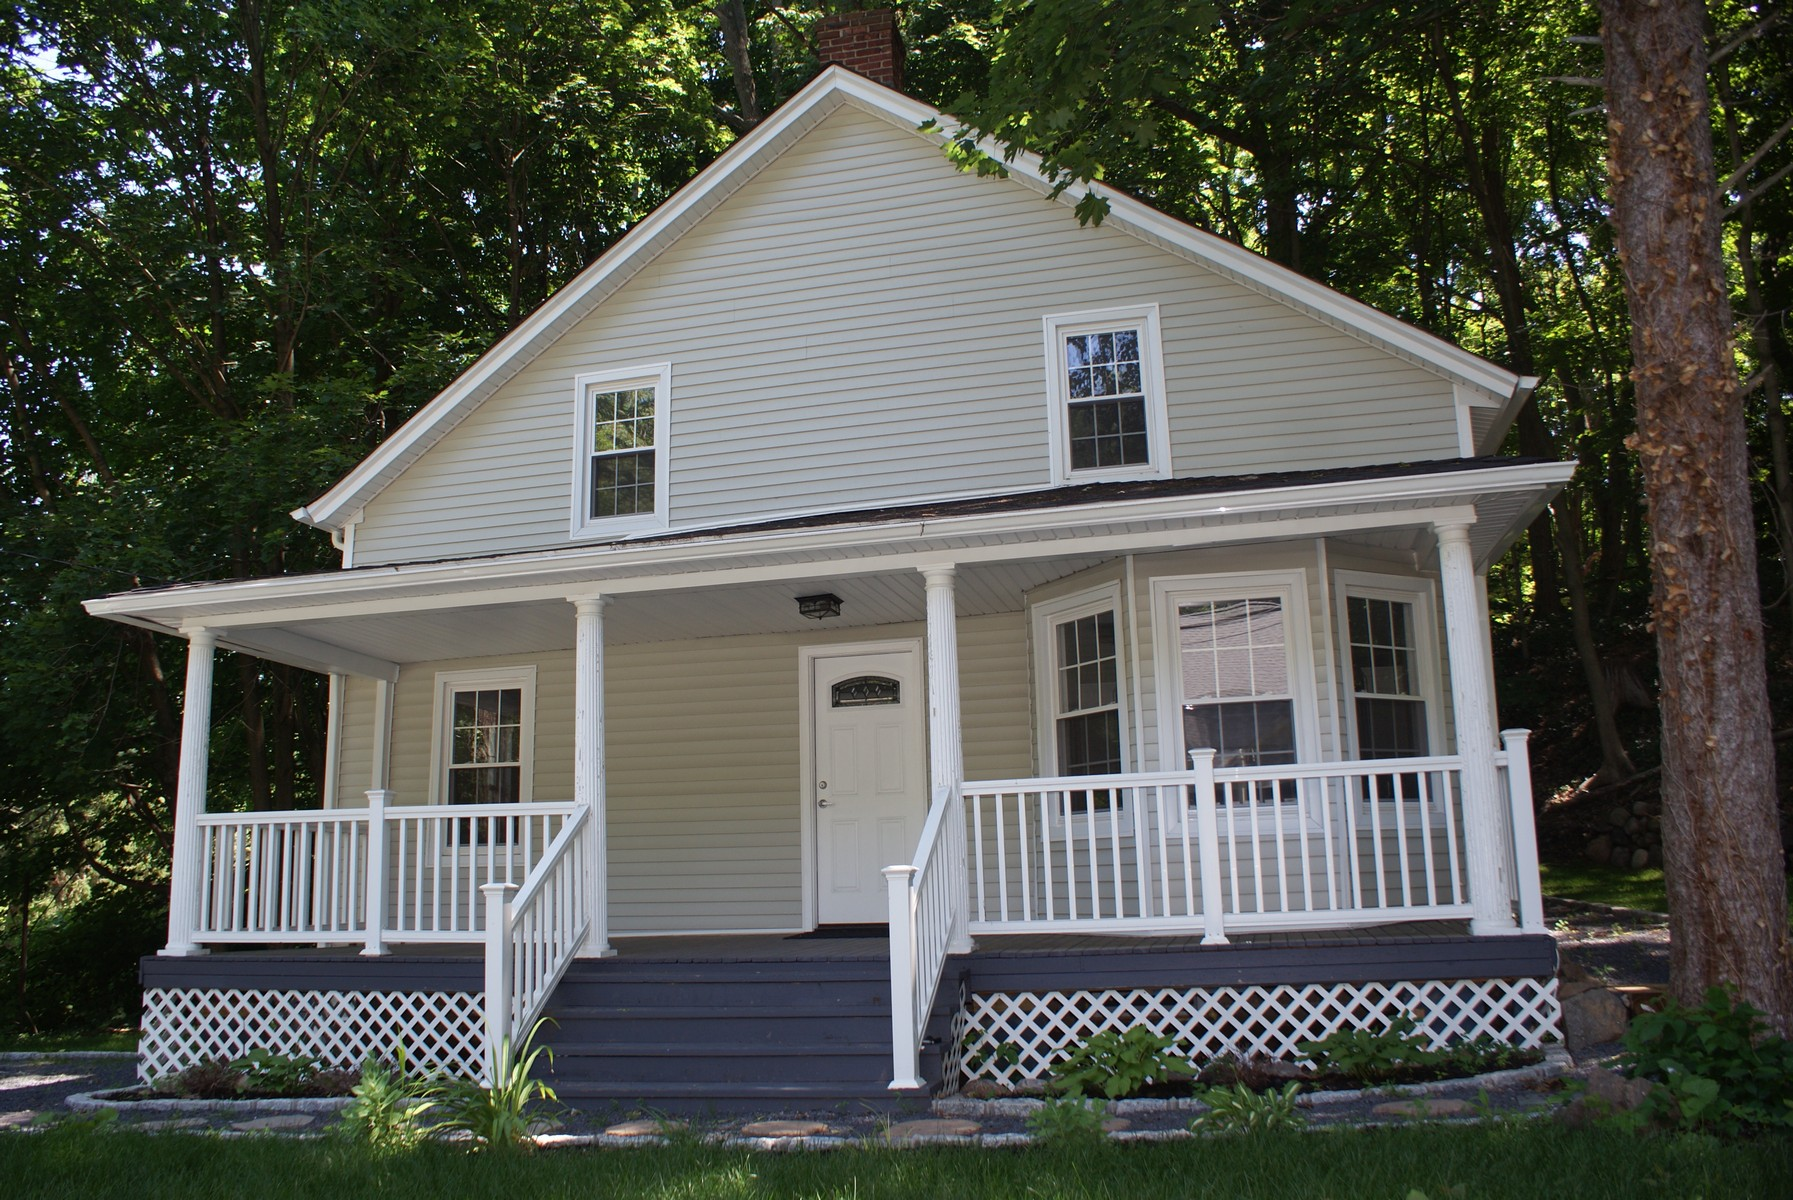 Single Family Home for Sale at Antique/Hist 171 Woodhull Rd Huntington, New York 11743 United States